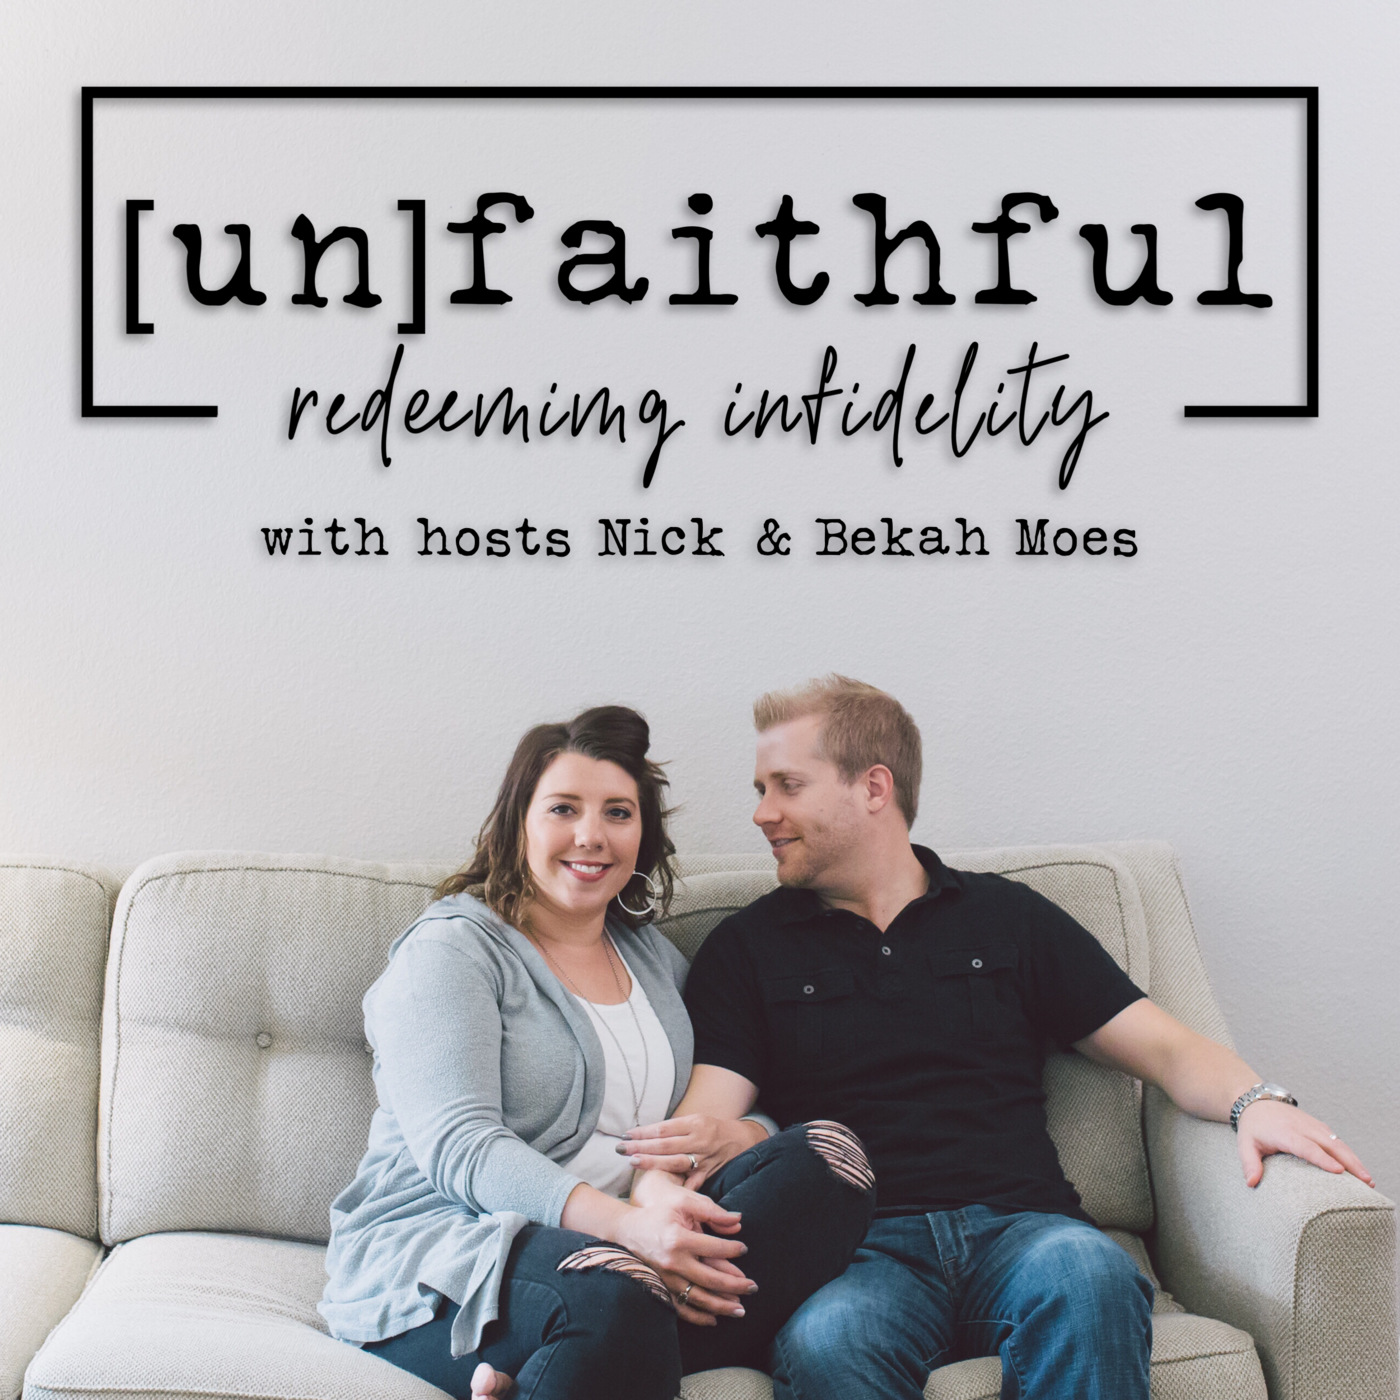 unFAITHFUL: redeeming infidelity on Apple Podcasts